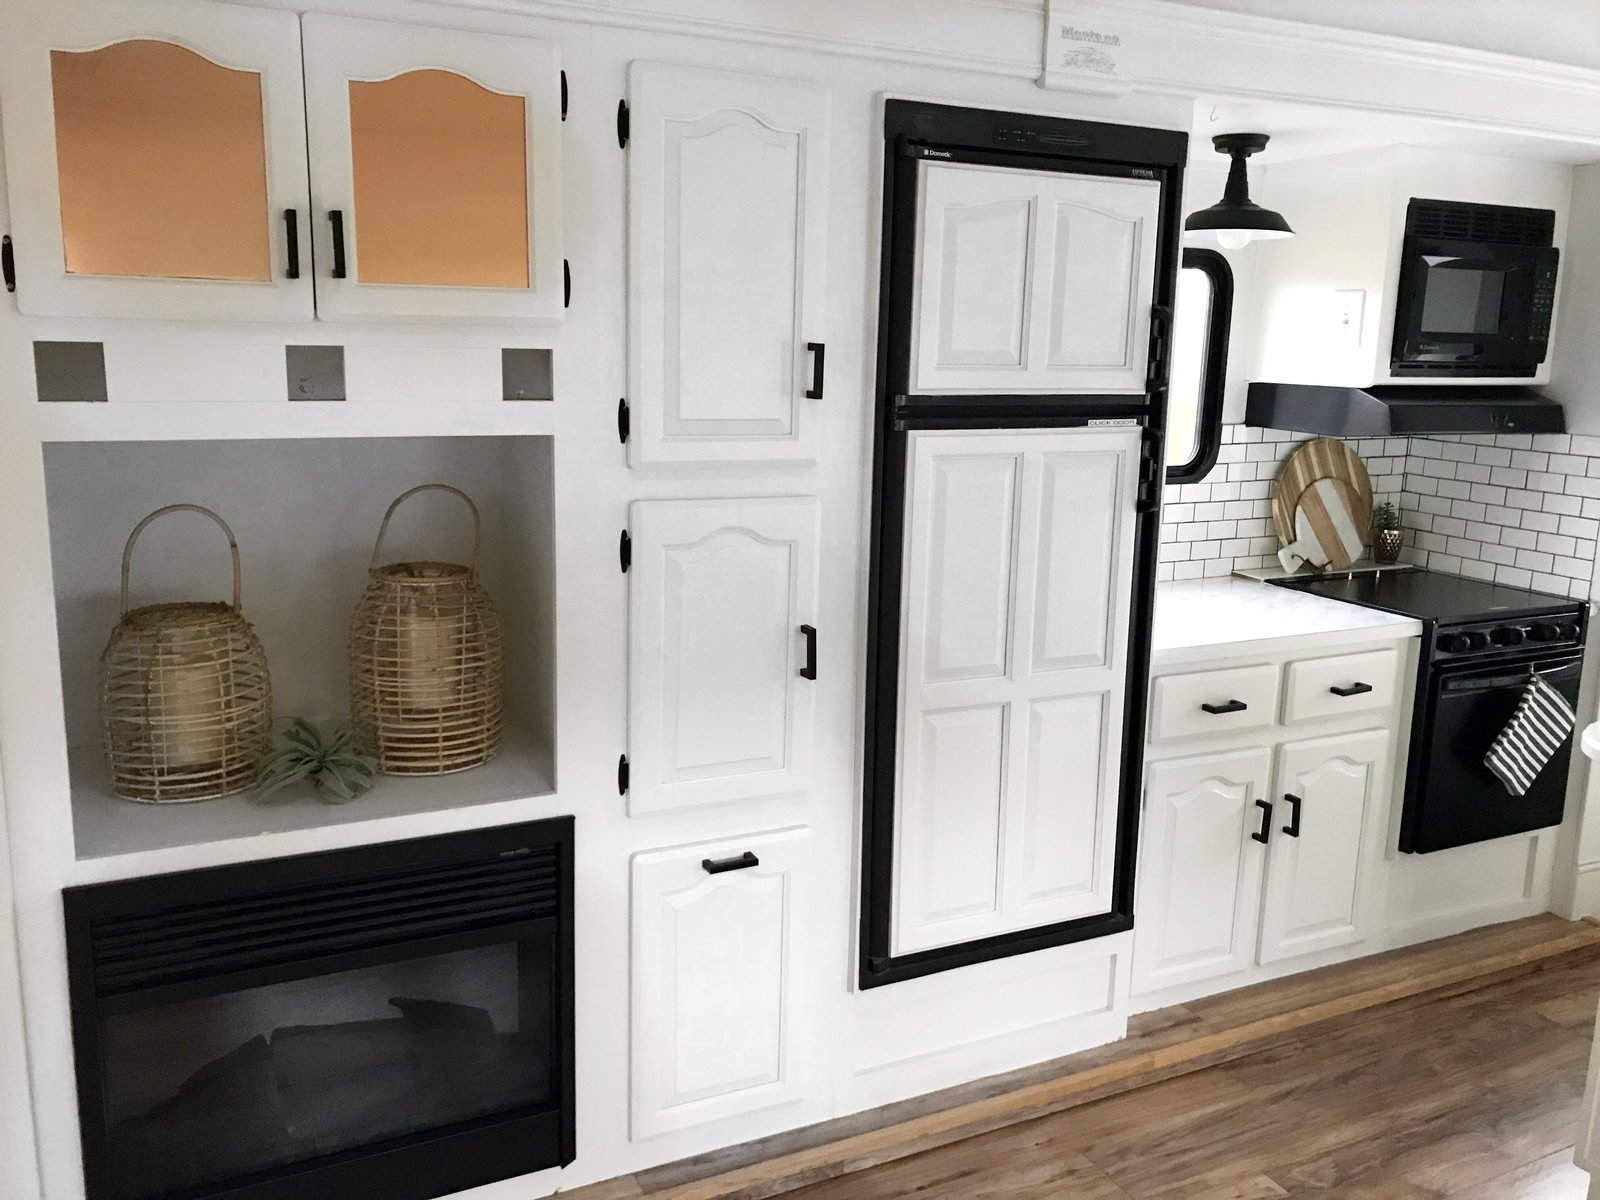 The kitchen has a fireplace, oven, microwave, electric cooktop and plenty of discreet storage.